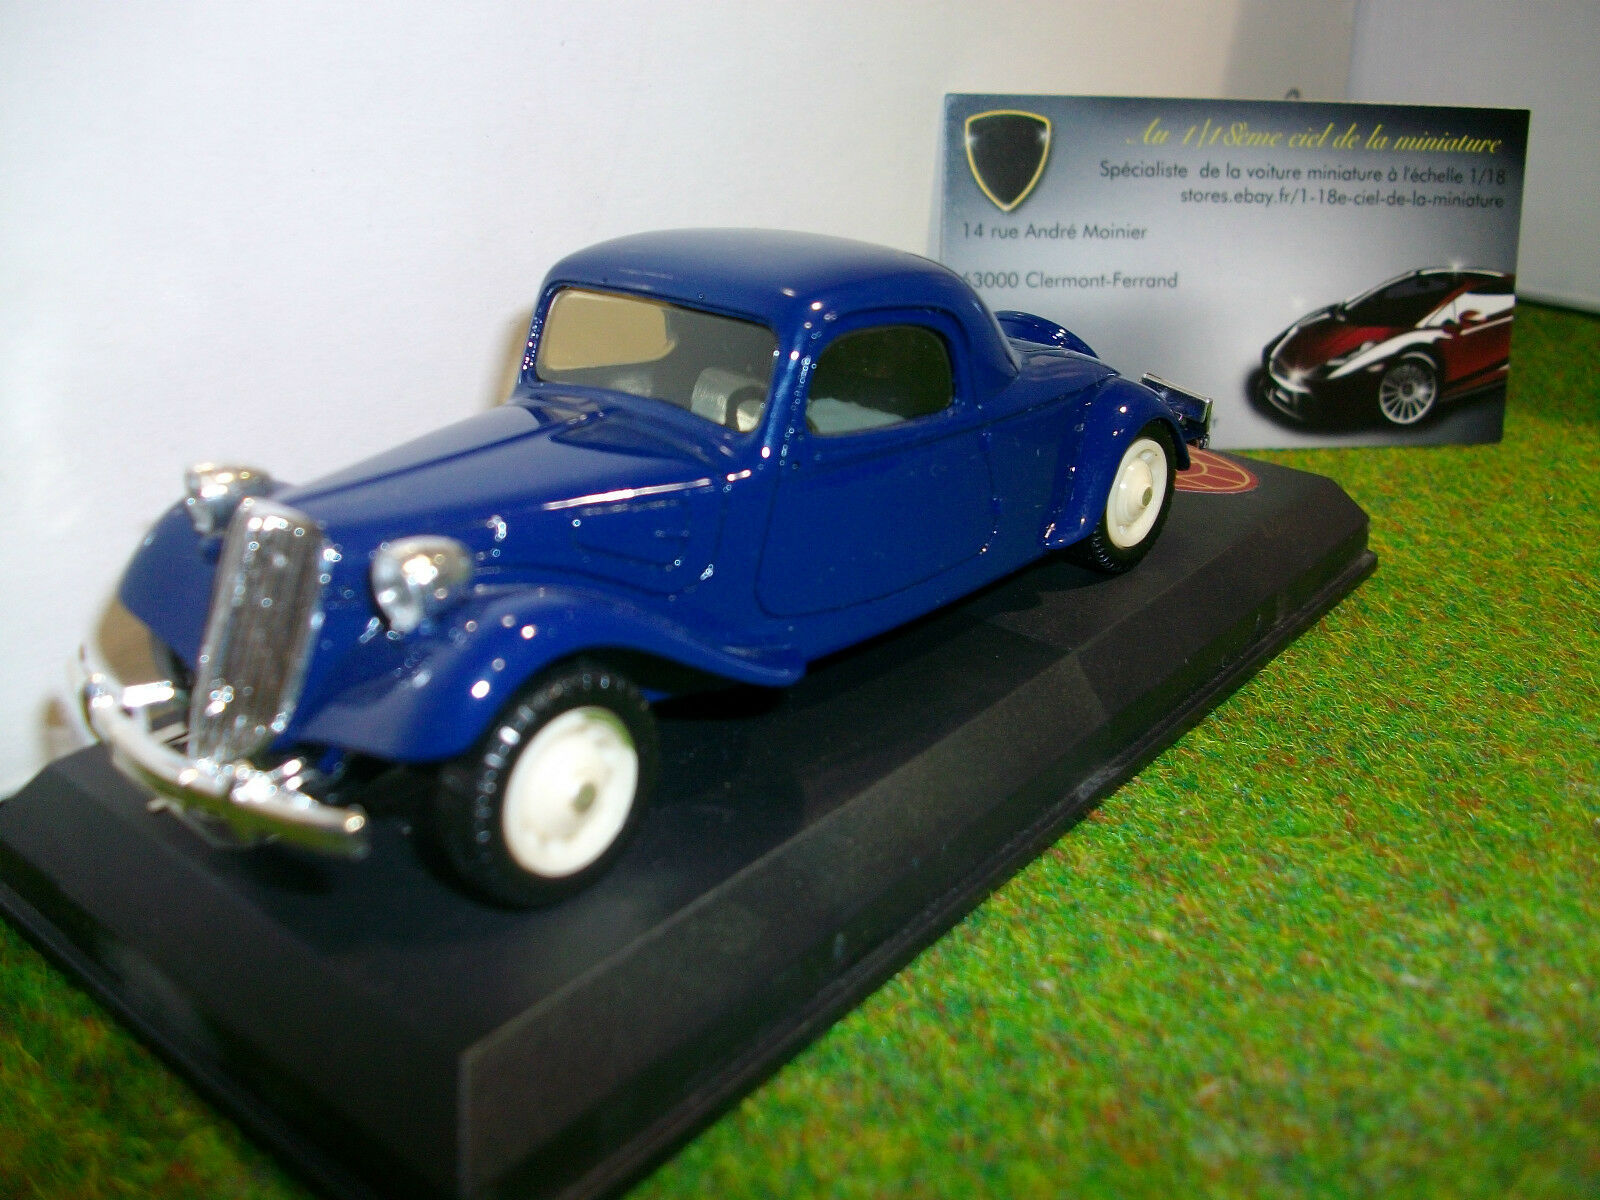 CITROËN TRACTION coupe bleu au 1/43 d ELYSEE 525 voiture miniature de collection